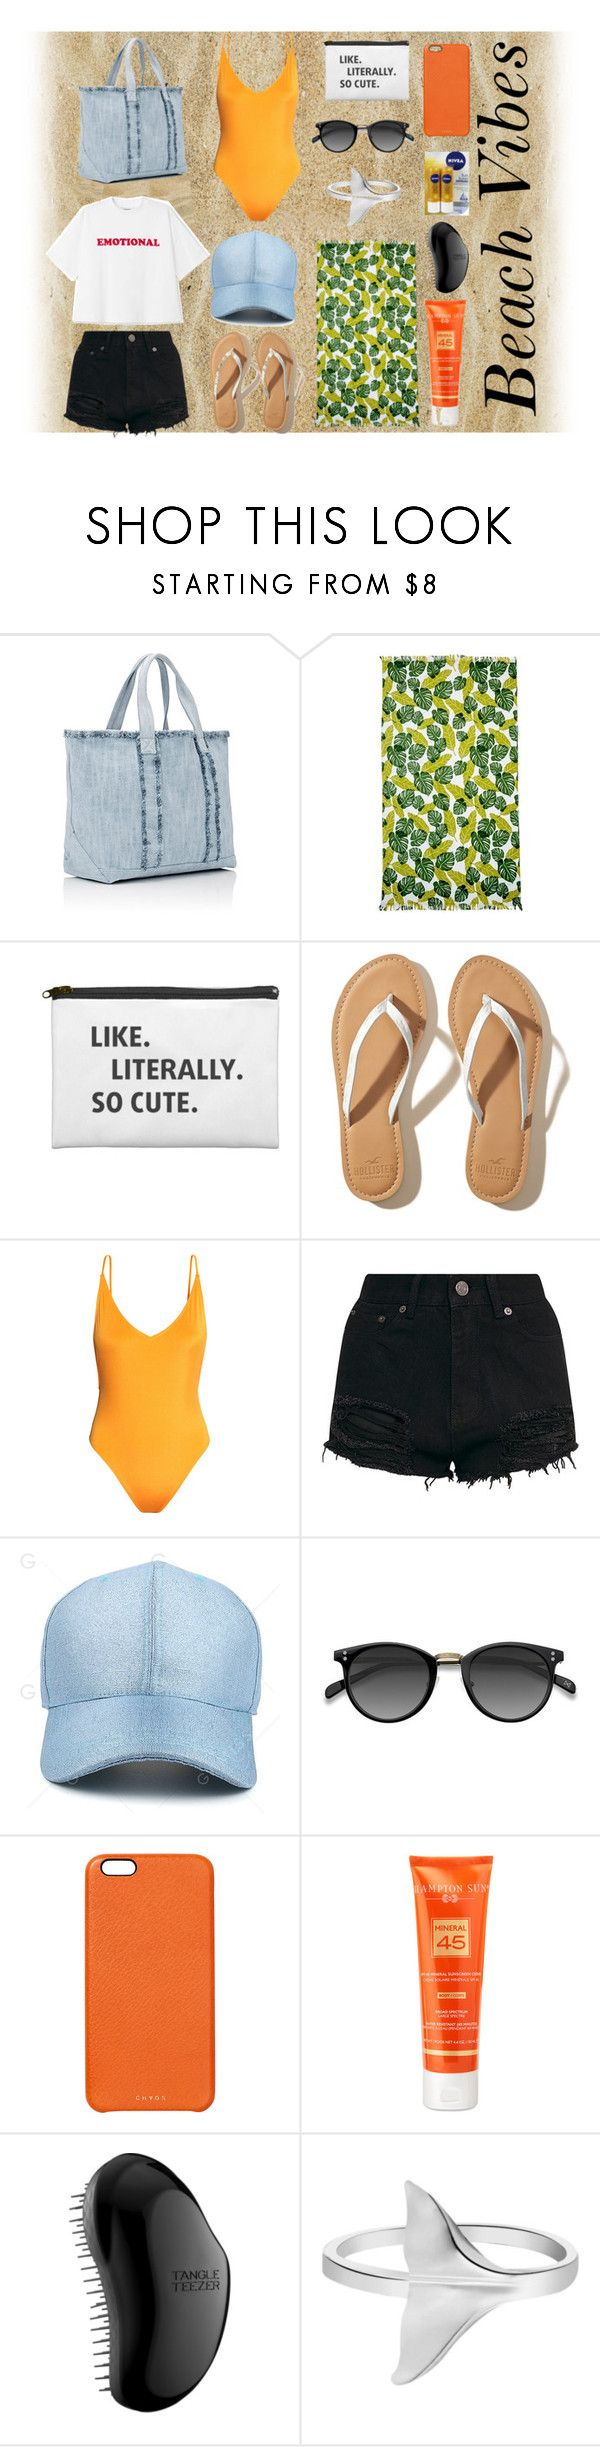 Beach Vibes by sebnemterzioglu on Polyvore featuring moda, H&M, Hollister Co., Barneys New York, Chaos, Hampton Sun, Tangle Teezer, Nordstrom Rack, Nivea and beach